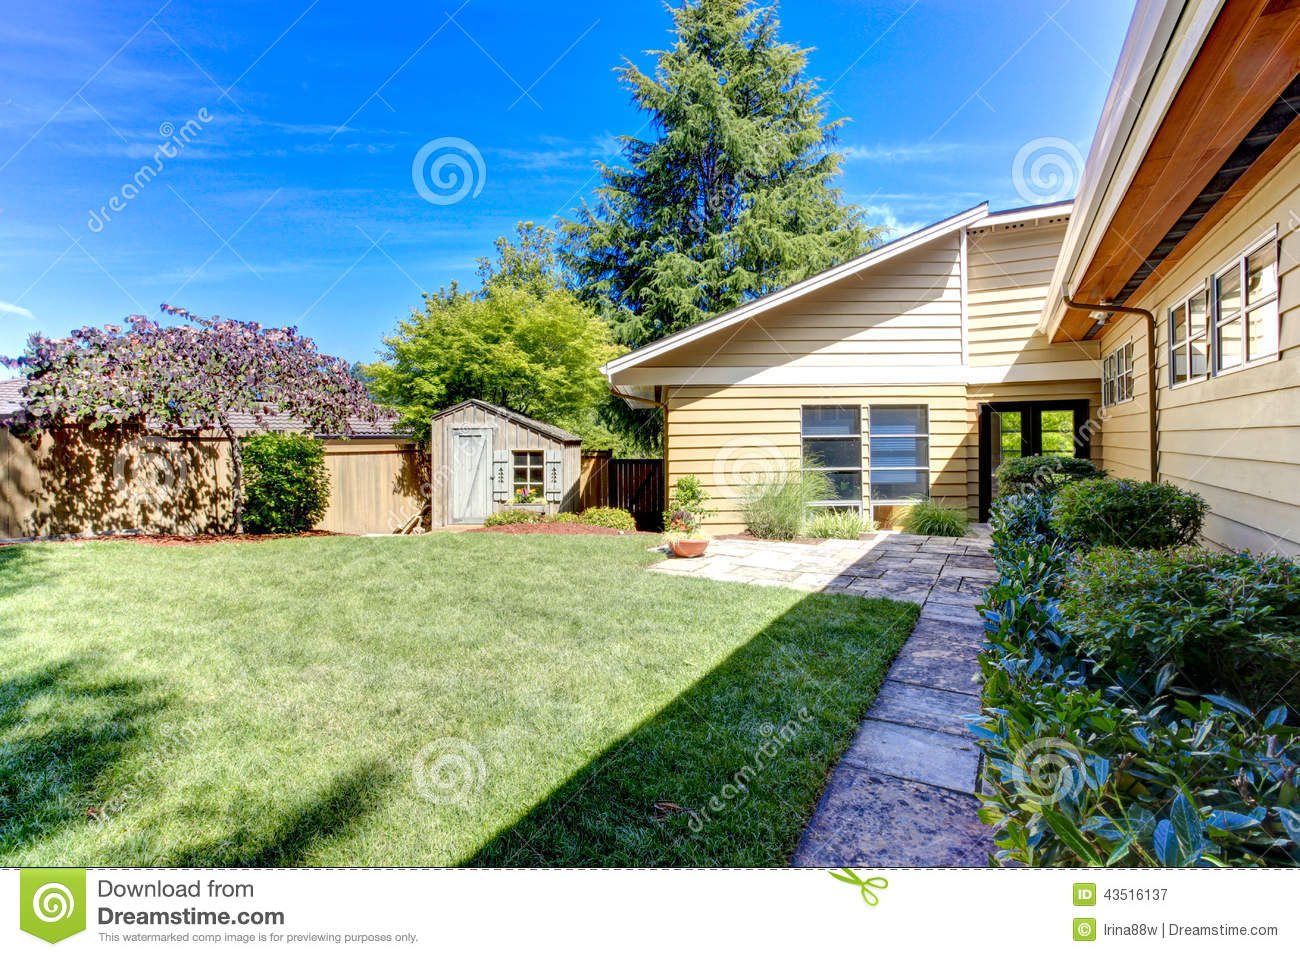 American House Exterior Green Backyard With Trees And